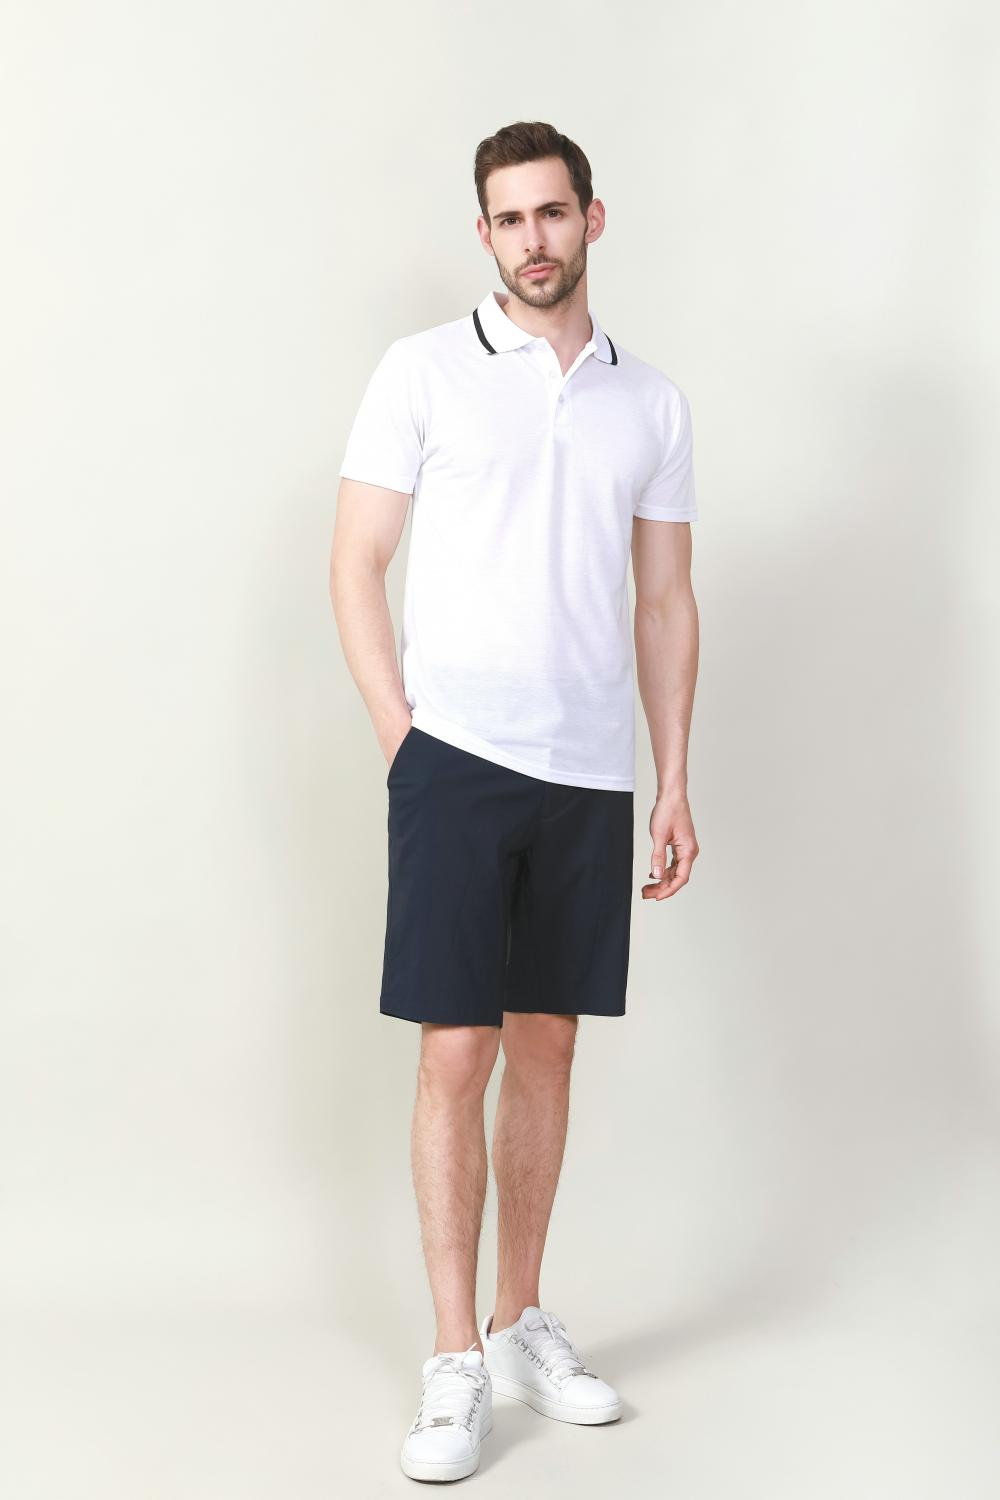 SLIT FIT WHITE POLO IN COTTON POLY FABRIC